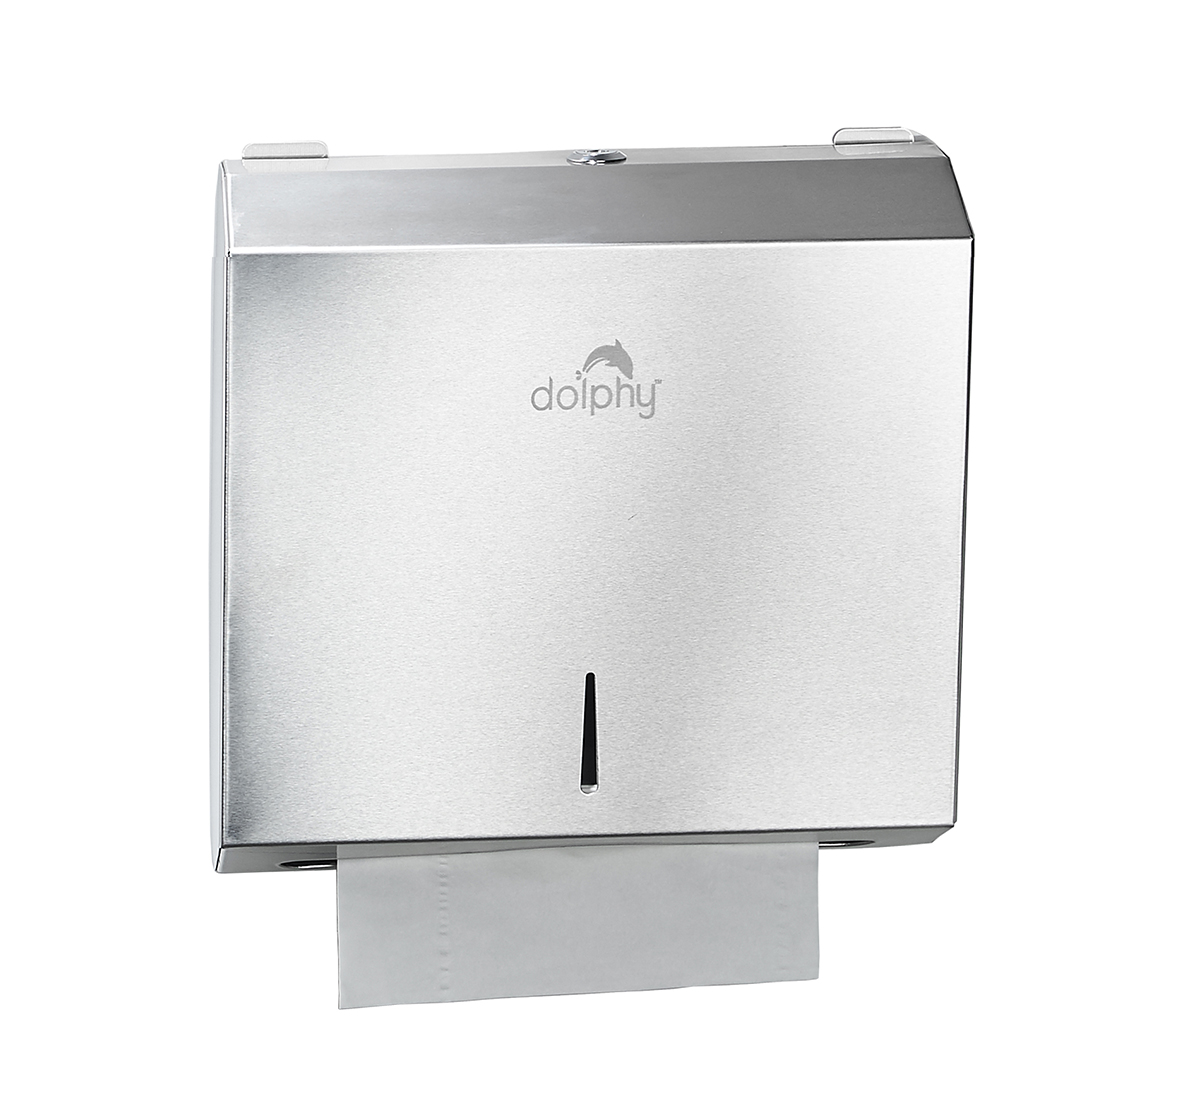 Stainless Steel Multifold Towel Paper Dispenser